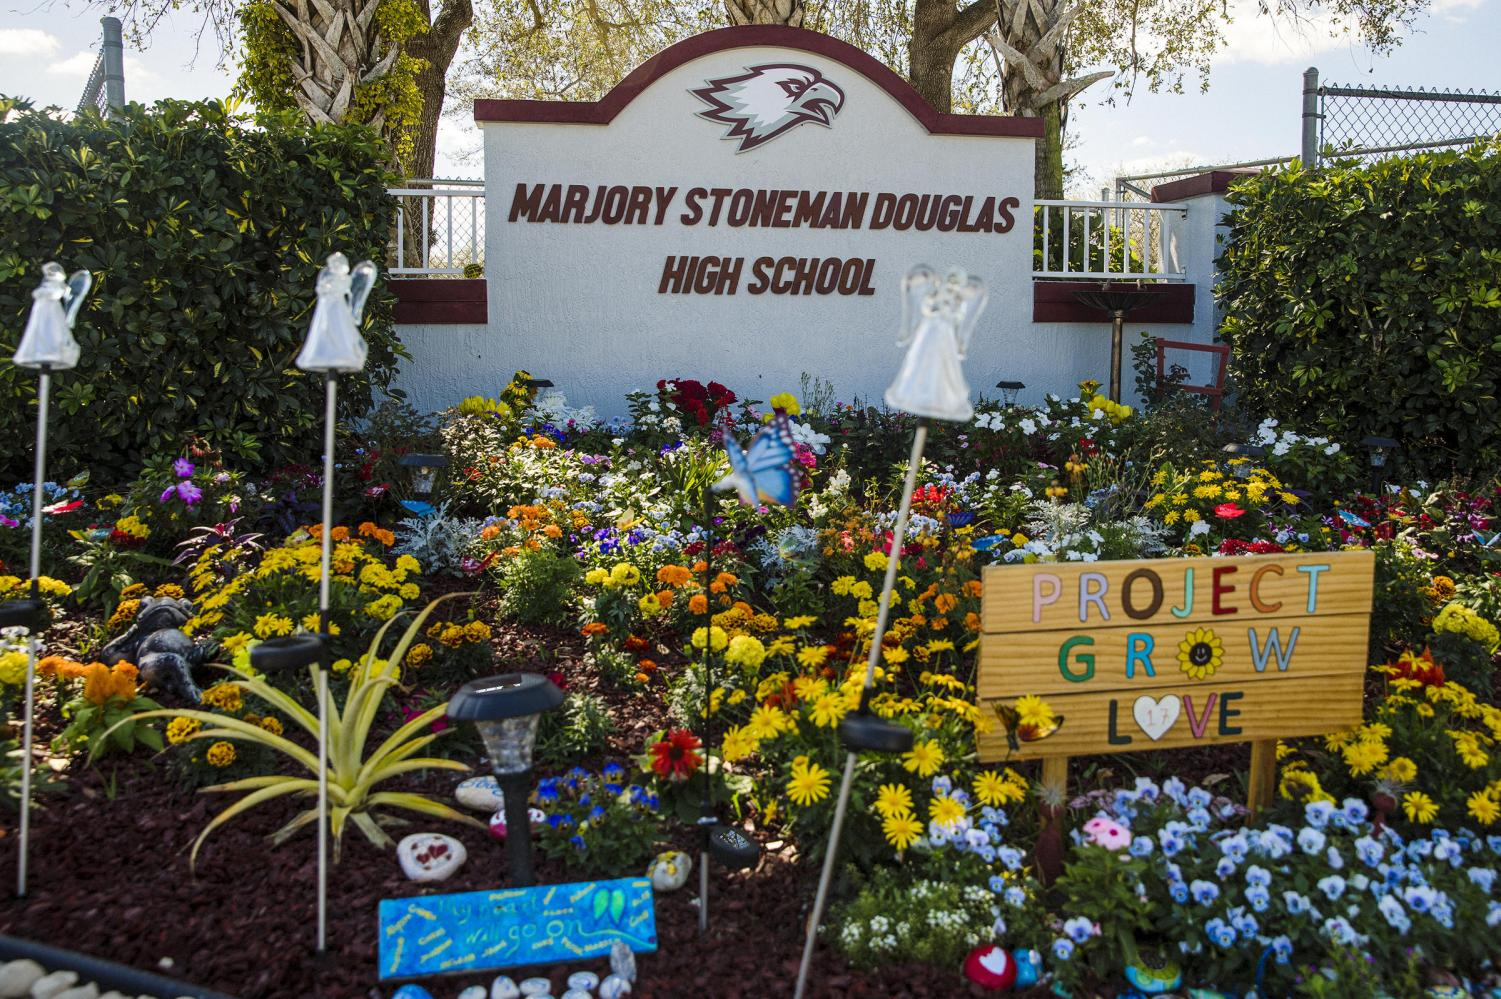 Olympic Heights is paying honor to the victims of the Marjory Stoneman Douglas shooting on the first anniversary of the shooting that claimed 17 lives there.